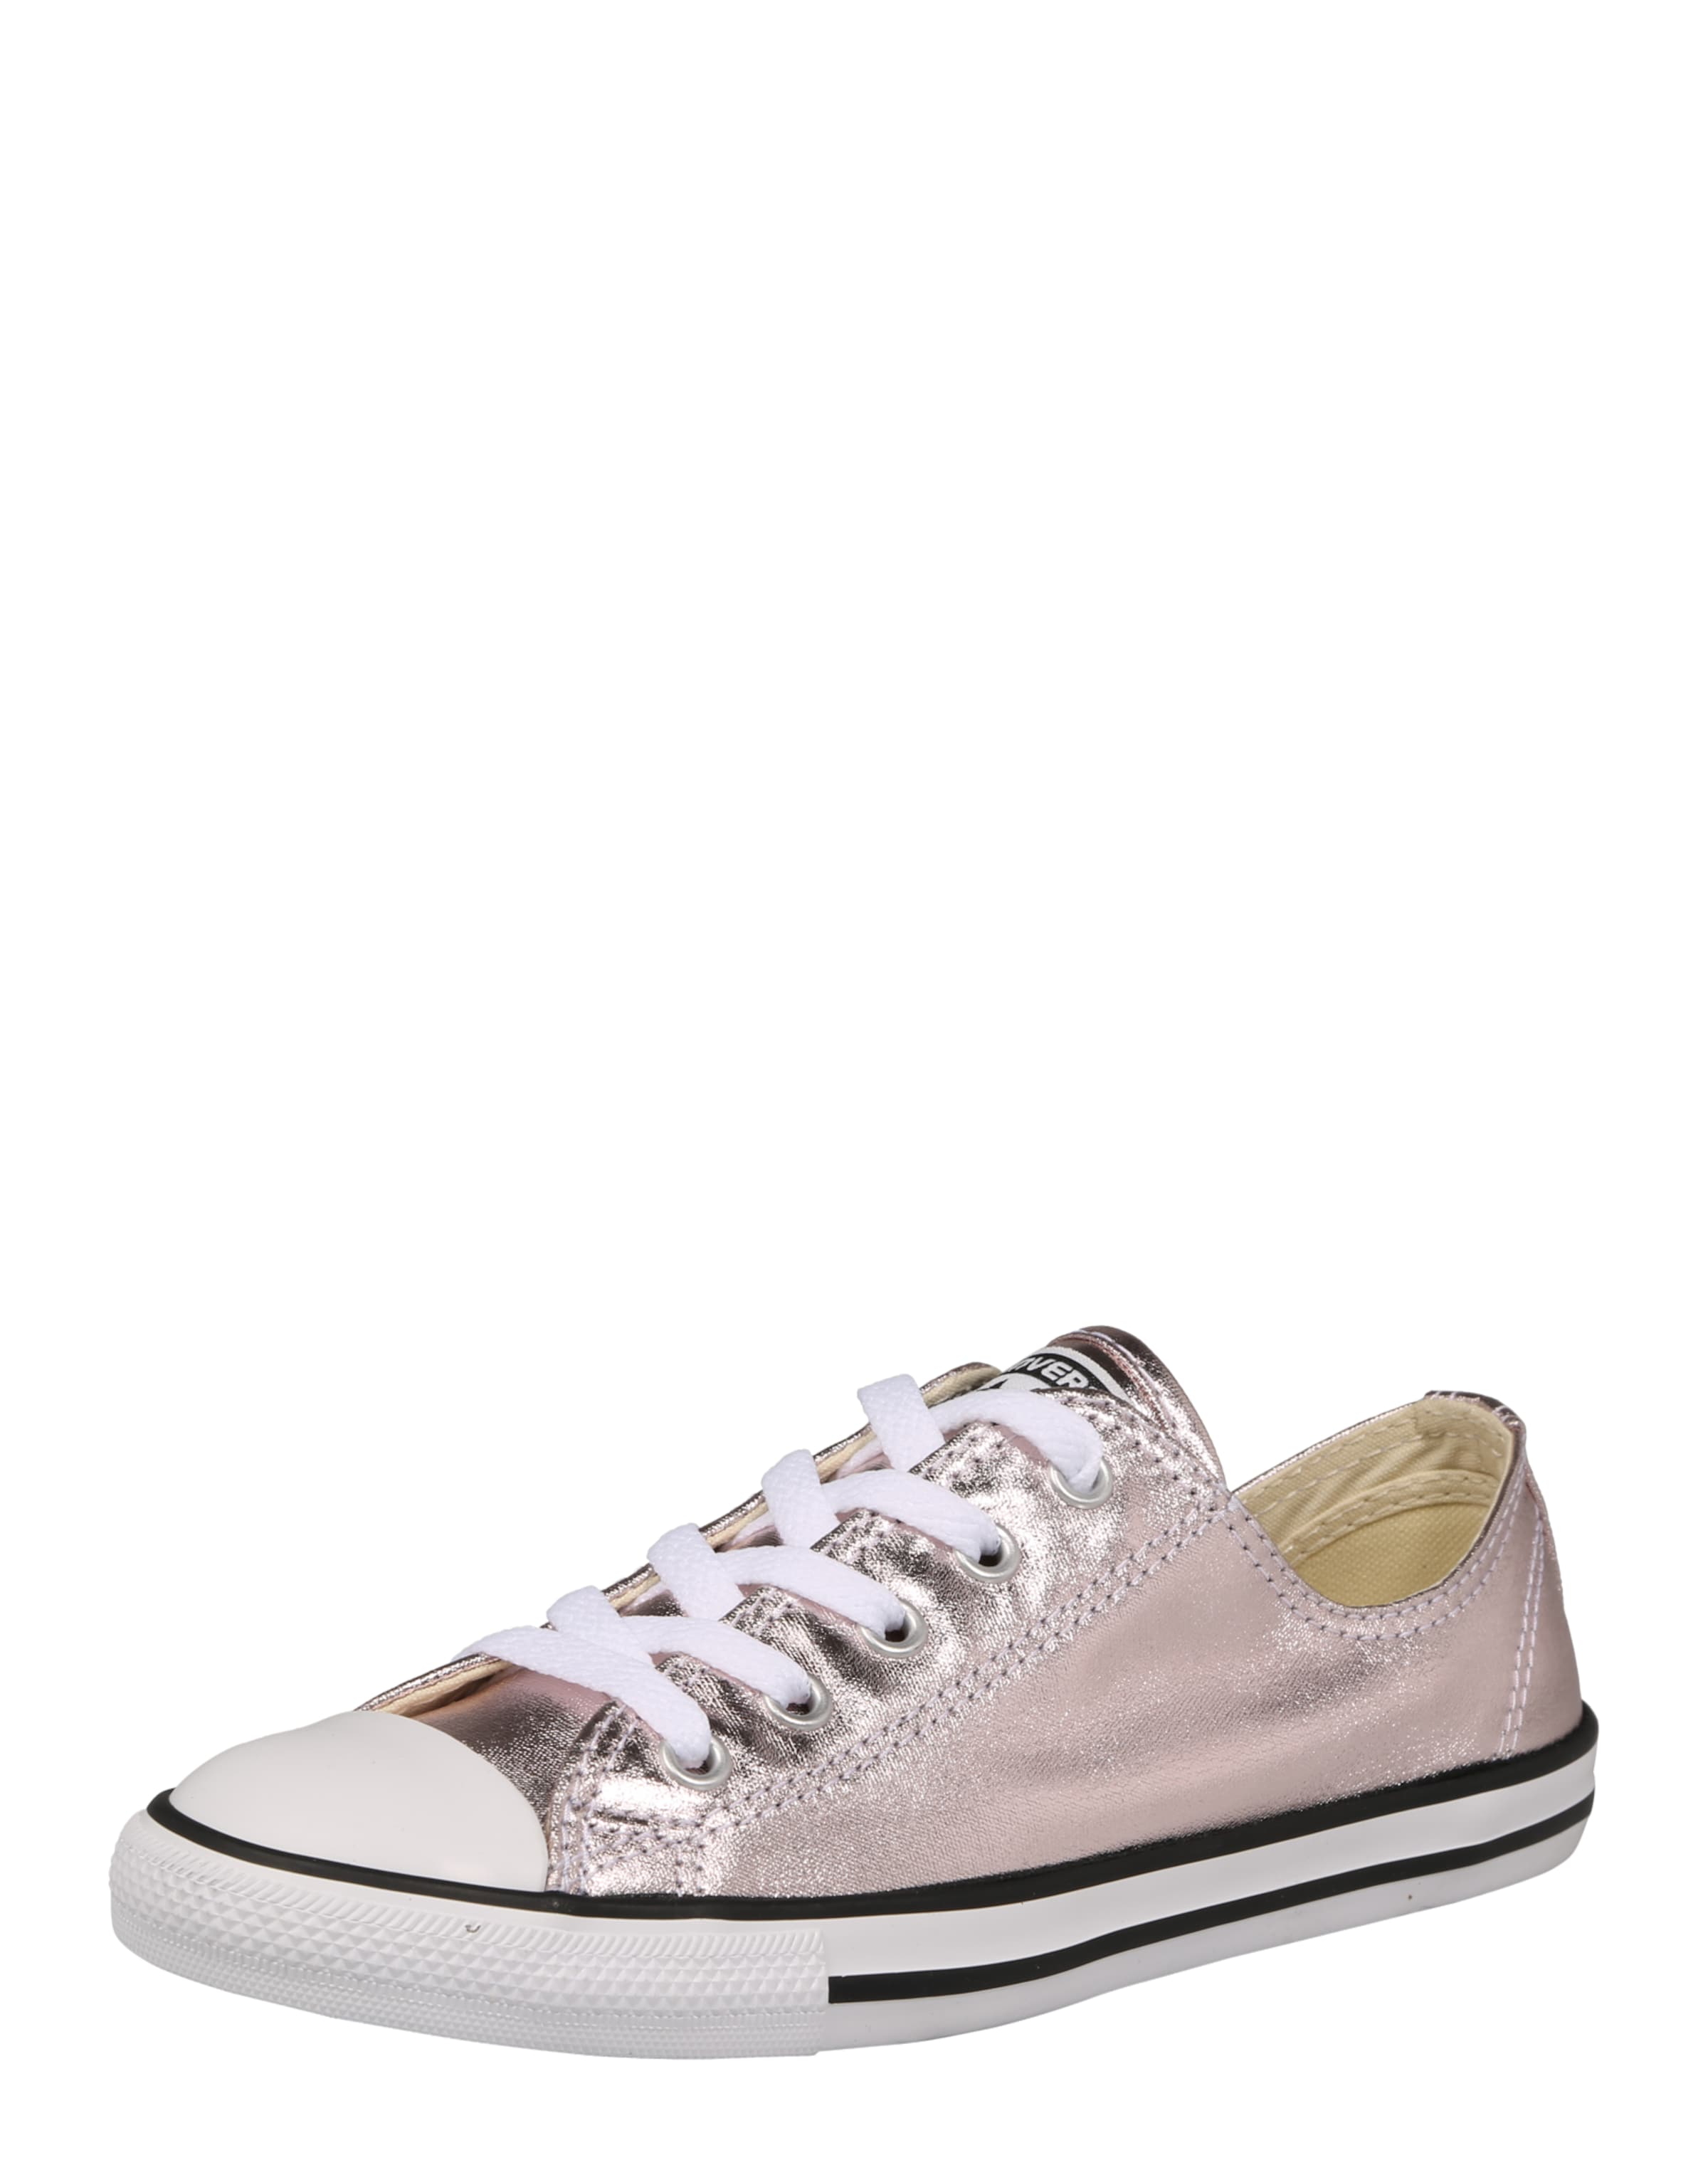 CONVERSE Chucks in Metallic-Optik Verschleißfeste billige Schuhe